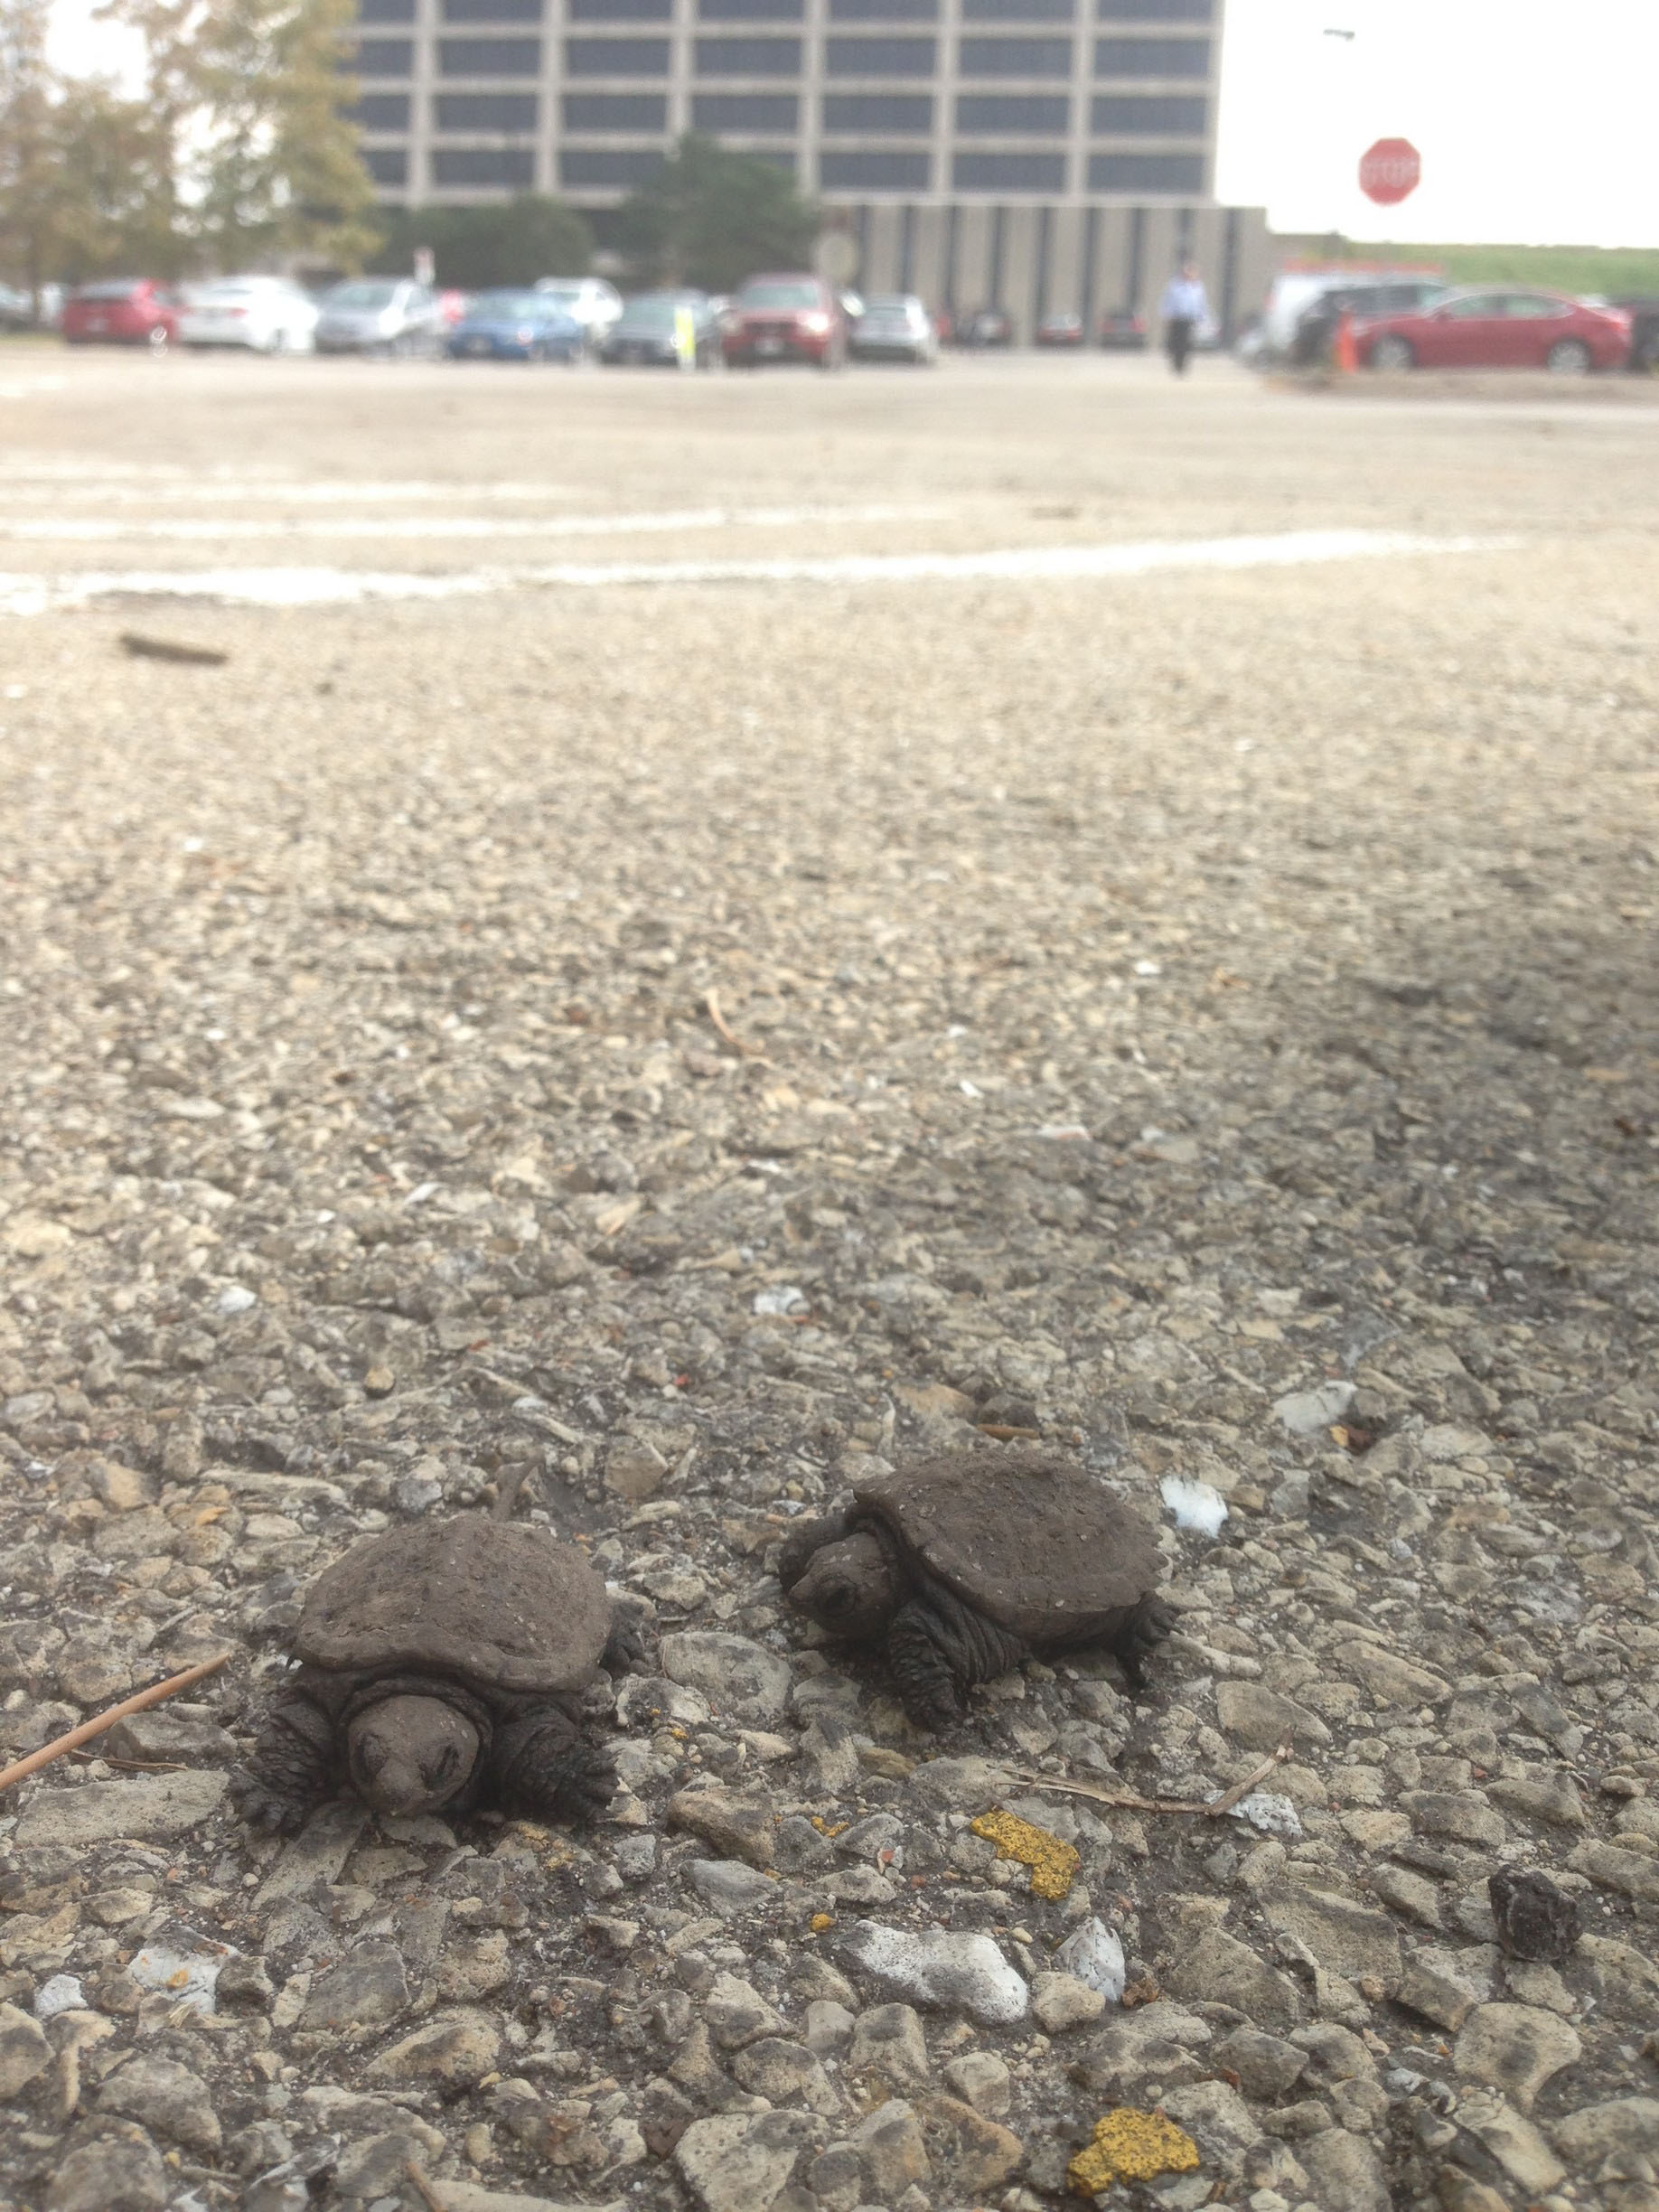 These little guys, barely two inches long, were recently seen wandering in the parking lot west of Wilson Hall. They were taken to safety. Photo: Patrick Sheahan, AD